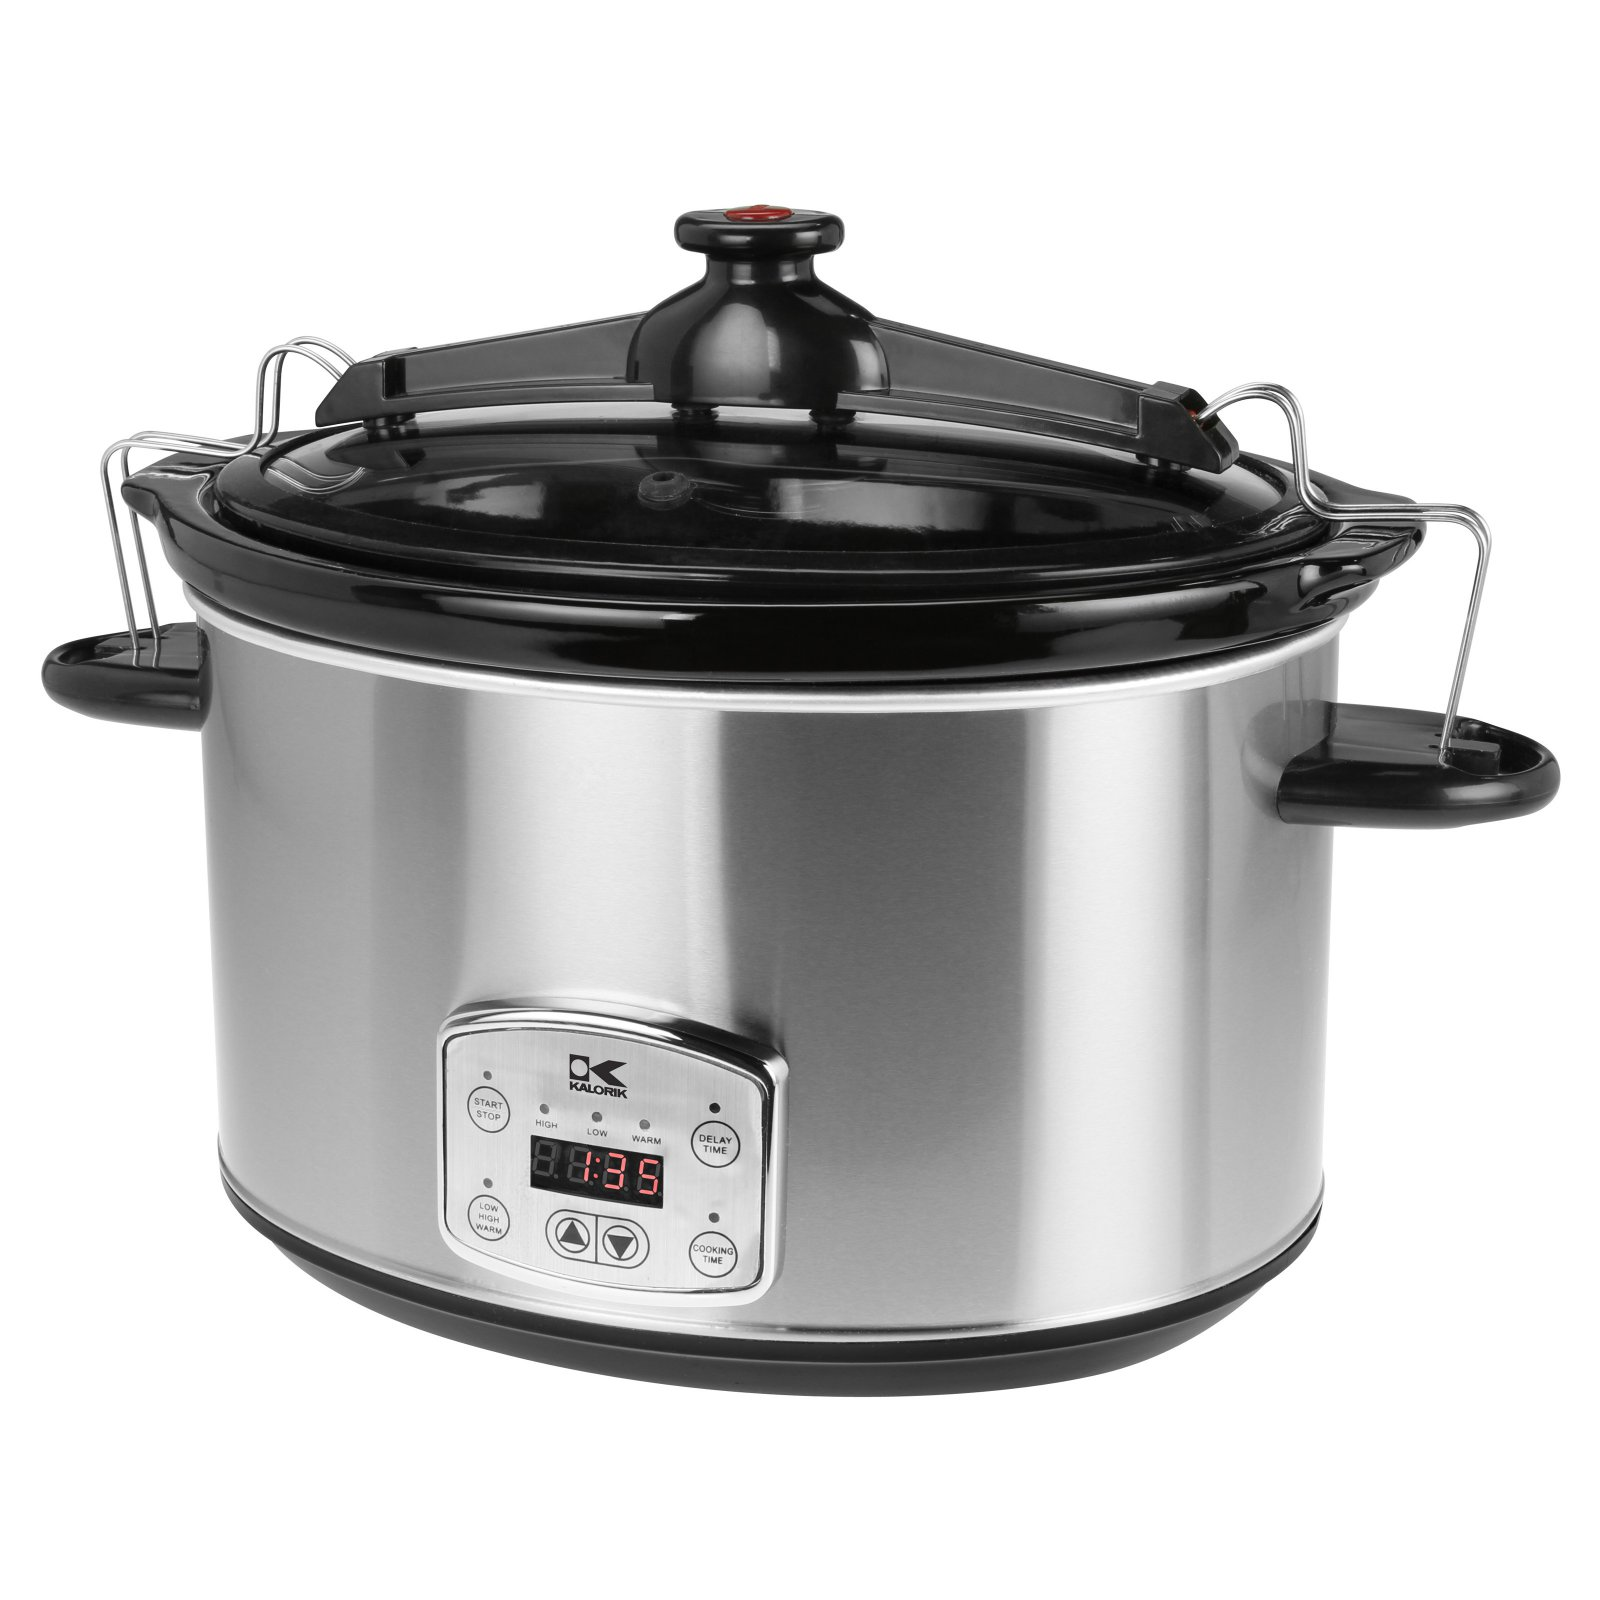 Kalorik 8-Qt Digital Slow Cooker with Locking Lid, Stainless Steel